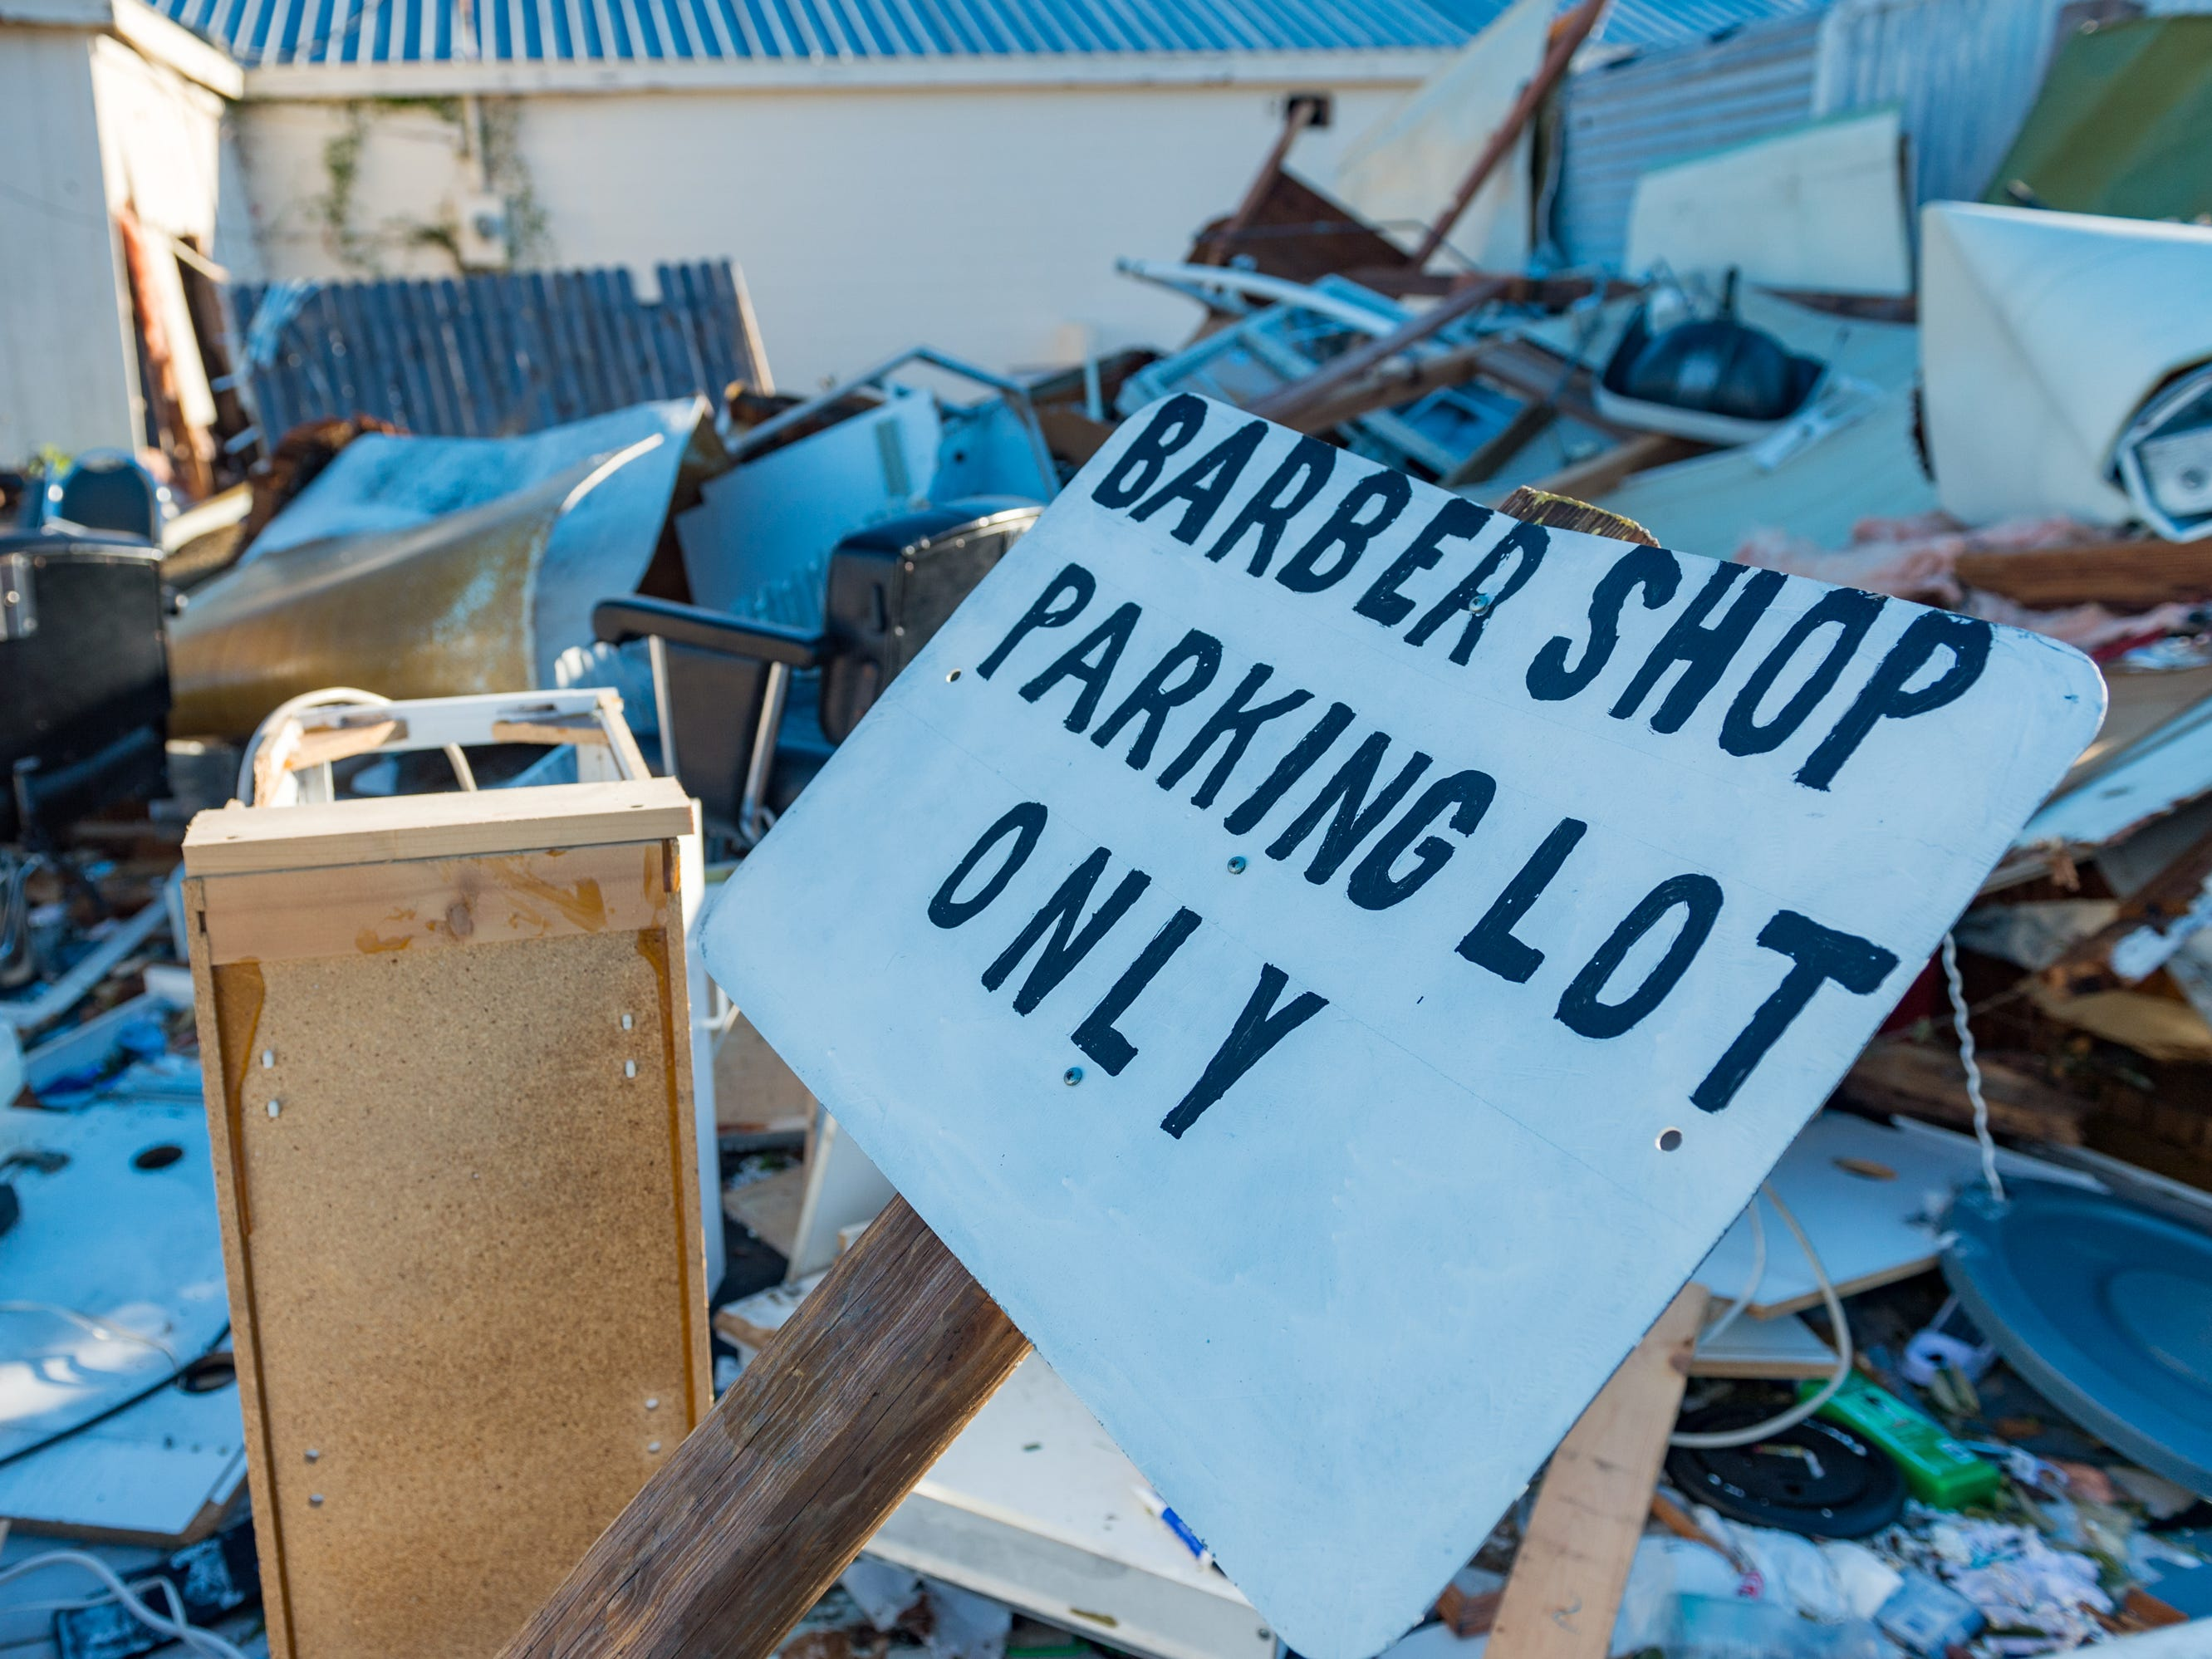 Damage cause by Hurricane Michael in Panama City, Fla. Oct. 12, 2018.